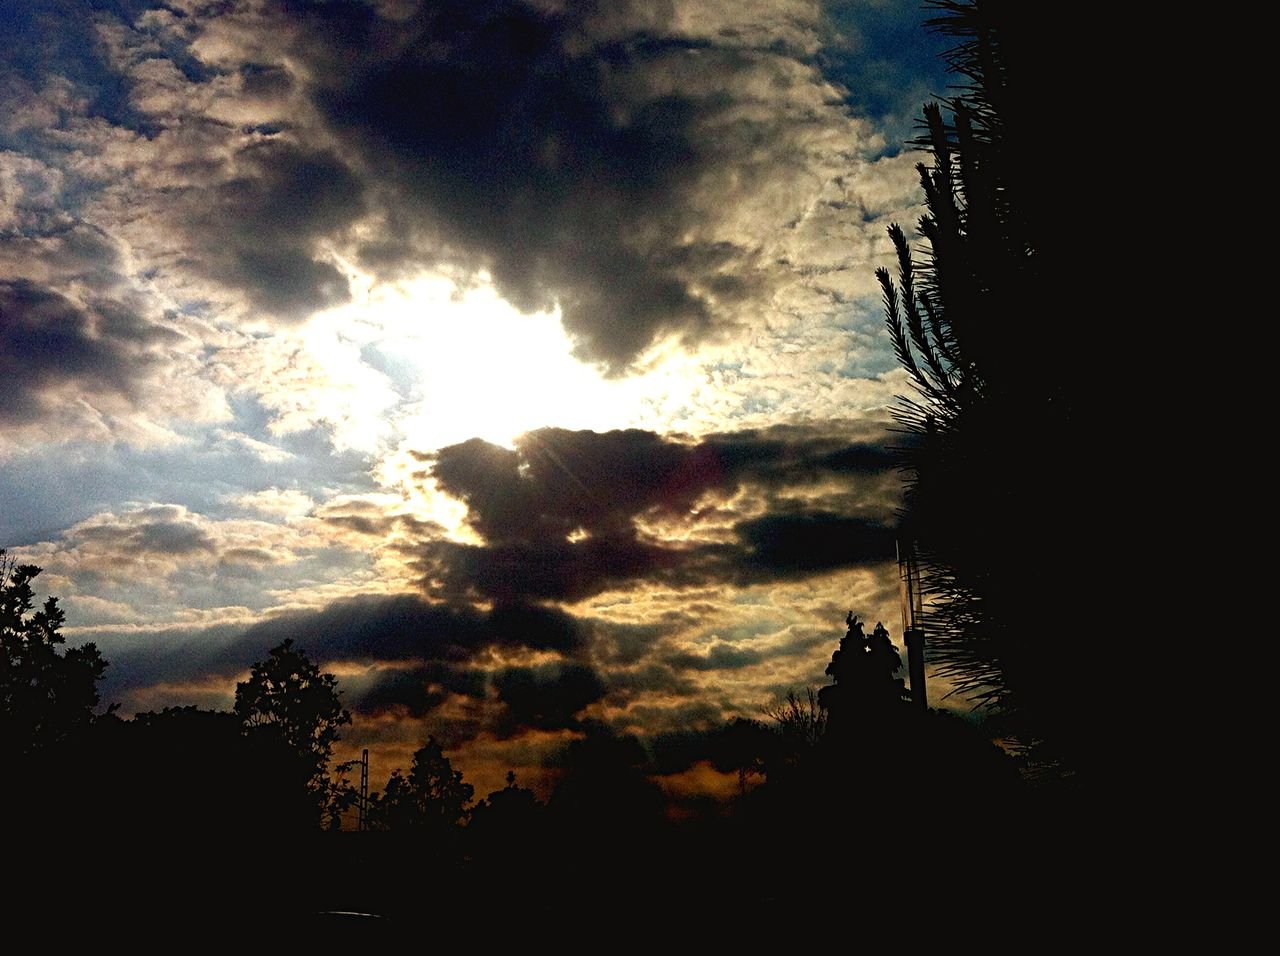 silhouette, cloud - sky, sky, sunset, nature, scenics, beauty in nature, outdoors, tranquil scene, no people, sunlight, sun, tranquility, low angle view, tree, day